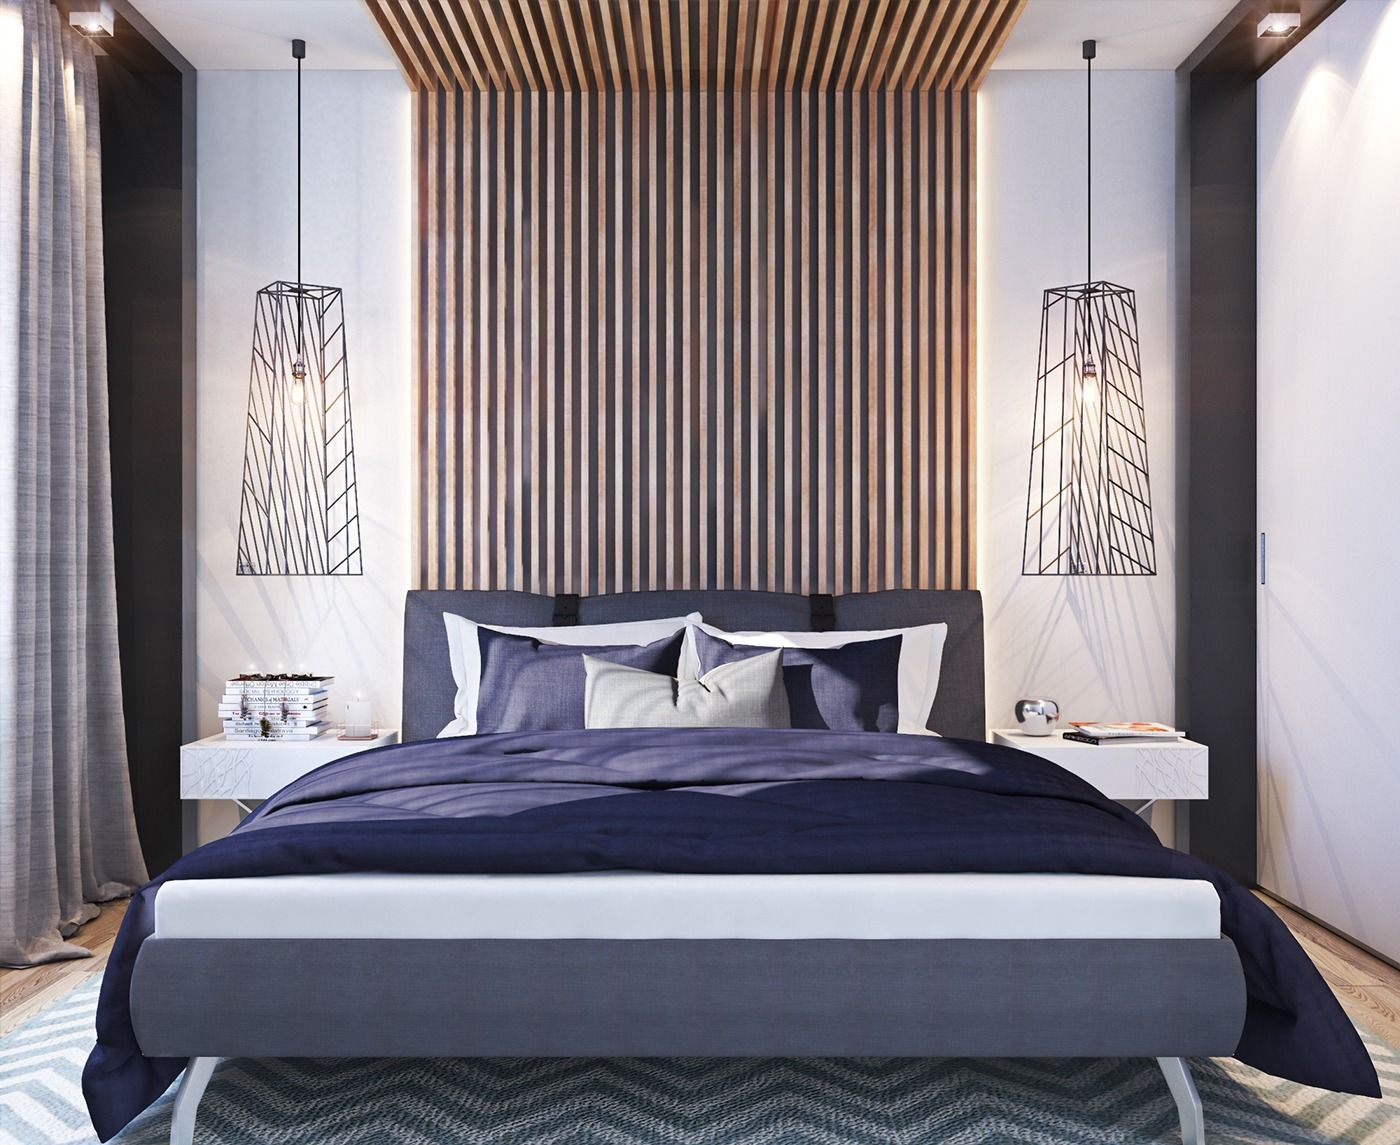 Purple and gray contemporary master bedroom contemporary bedroom - Similarly The Master Bedroom Is Not Massive But Simple Relaxing Colors Like A Contemporary